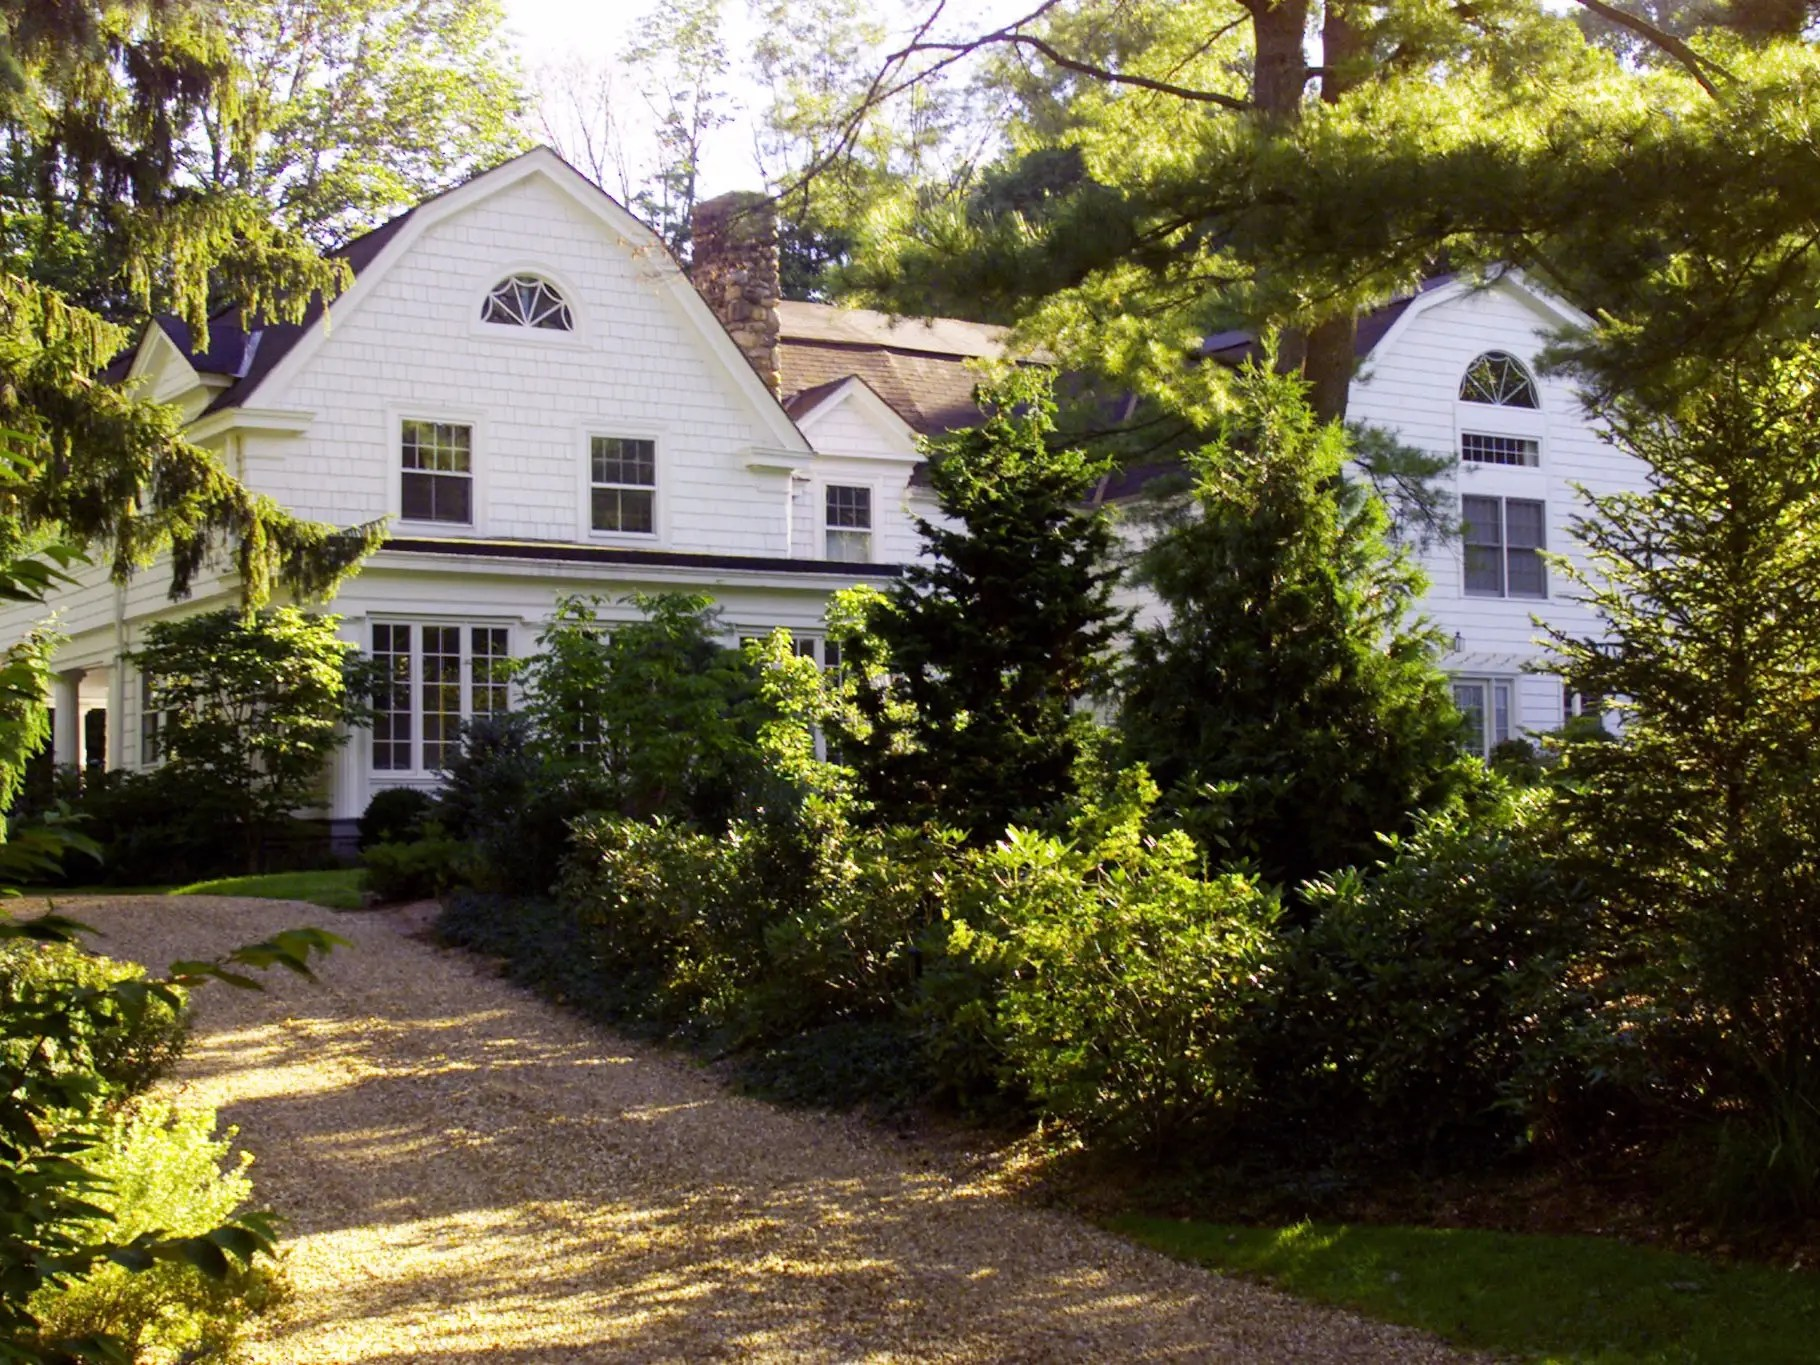 The family later purchased this 100-year-old Dutch Colonial home outside Westchester, New York, for $1.7 million, so that Clinton could establish residency in the state. She set sights on a US Senate seat in 2001.